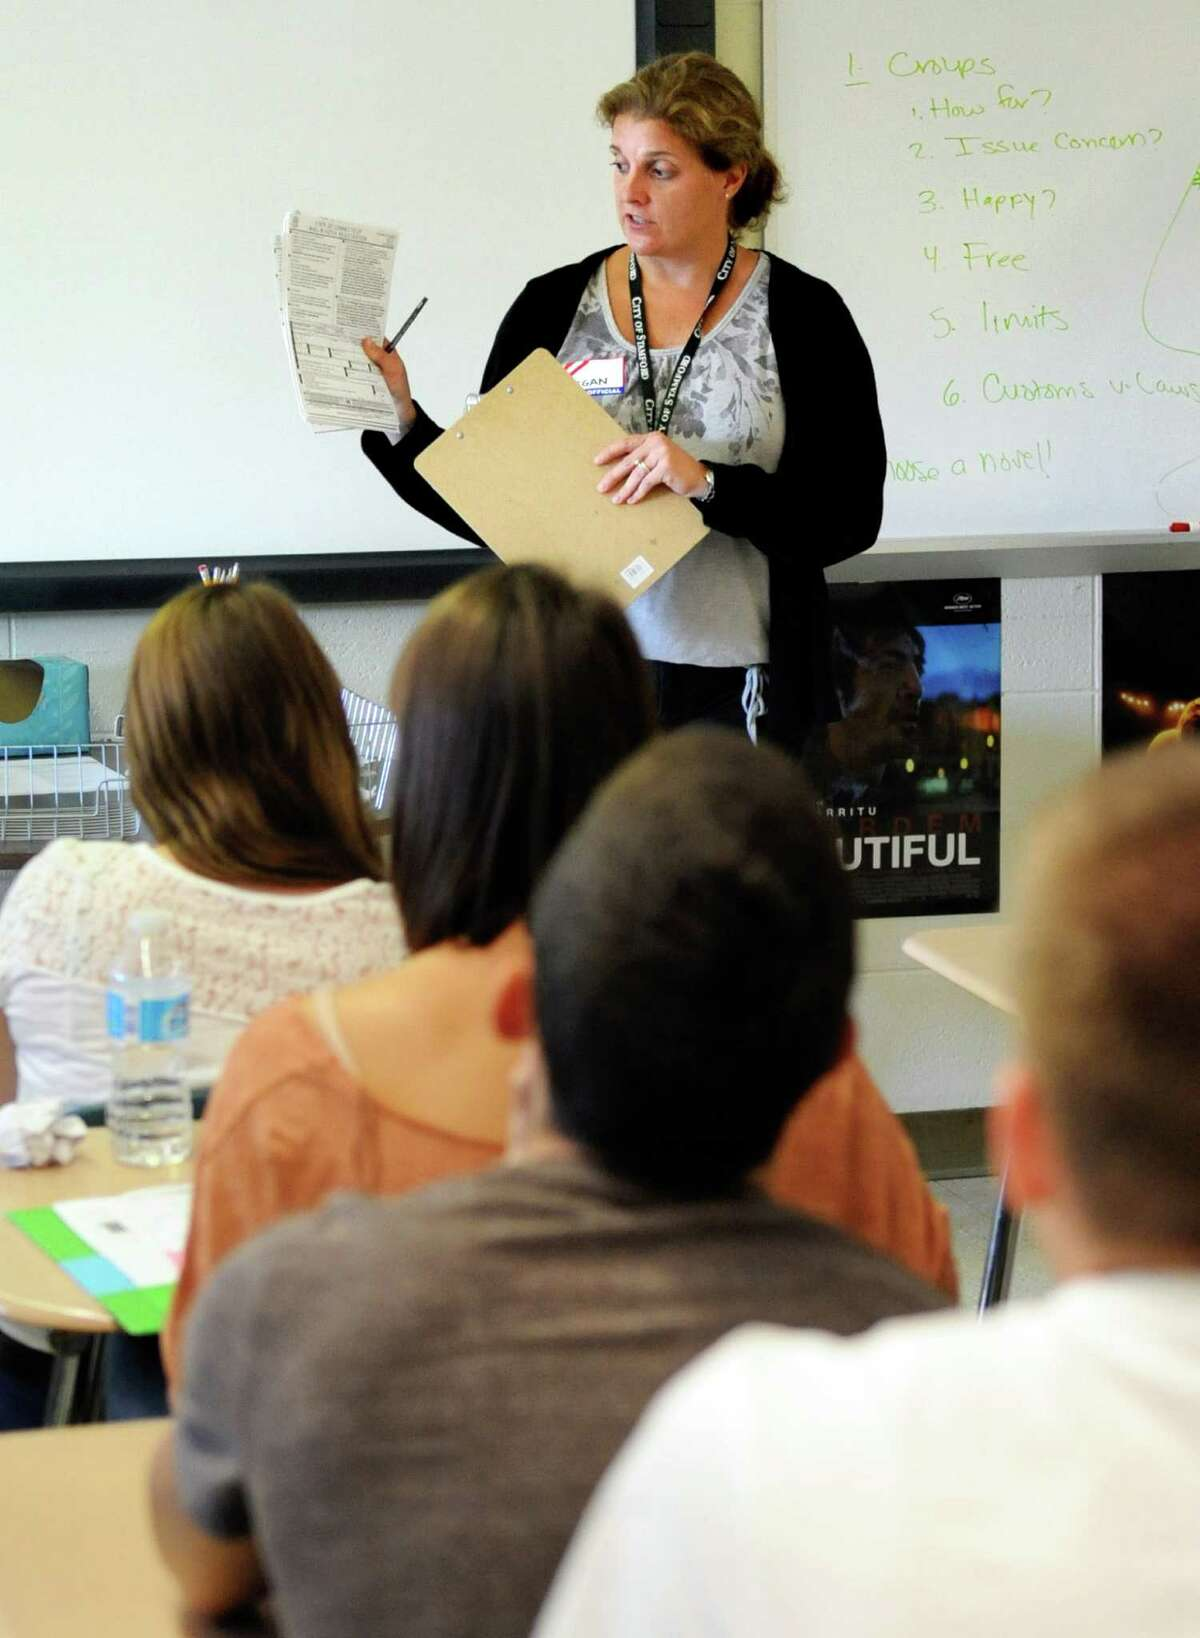 Regan Allan, seasonal employee at the Democratic Registrar of Voters, speaks to a class at Westhill High School on Thursday, September 13, 2012, to provide students the opportunity to register to vote.